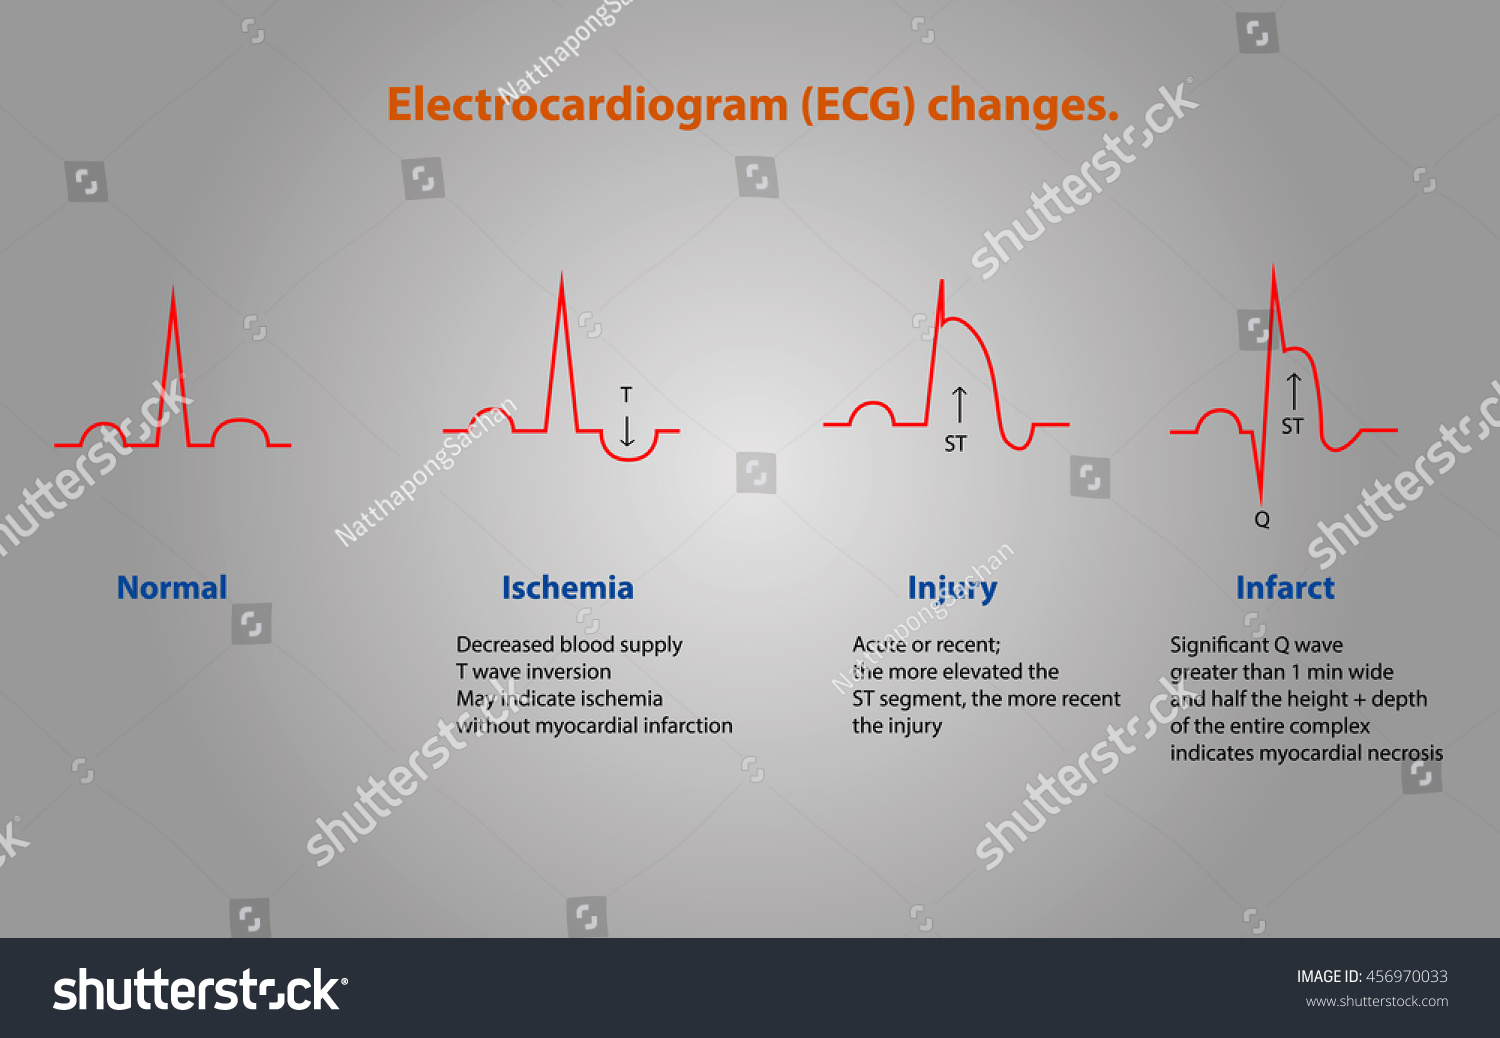 Electrocardiogram Diagram Electrocar Diogram Picture Show Ecg Changes Stock Vector Royalty The Normal And Abnormal